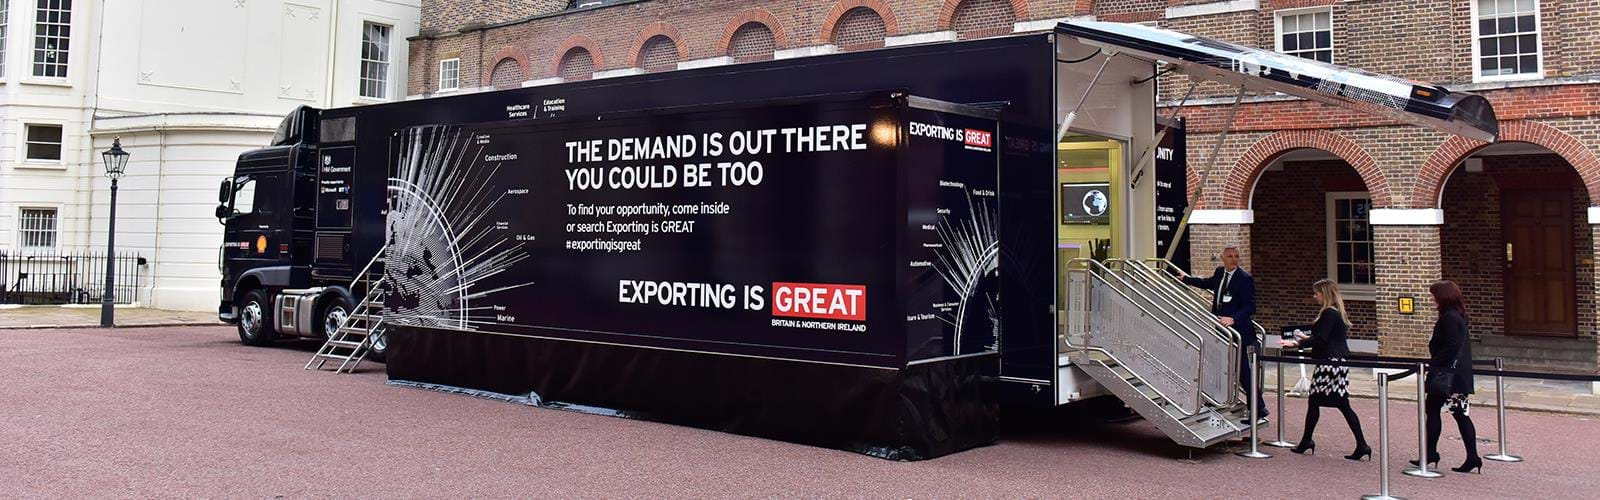 Ukti Exporting Is Great Roadshow Truck B13